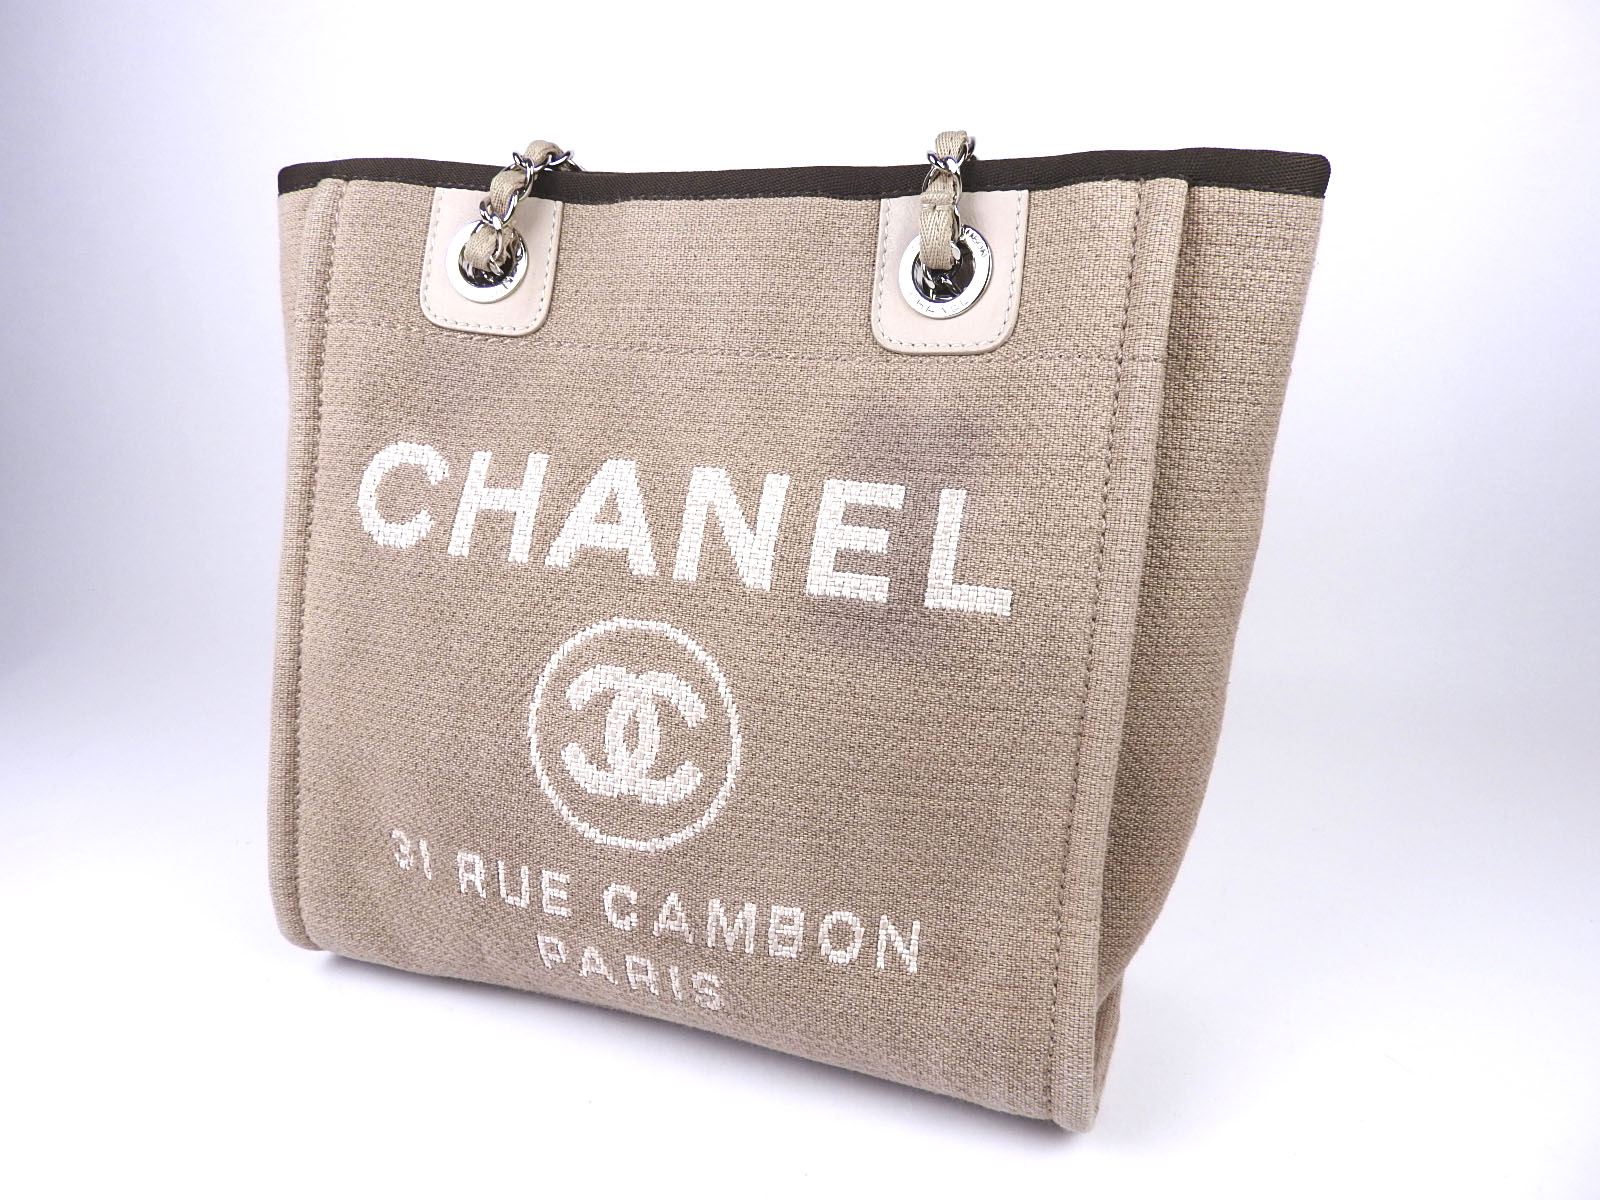 3ff9b9c2aa6a Chanel Deauville Canvas Tote Size. CHANEL Deauville Tote Shoulder Bag ...